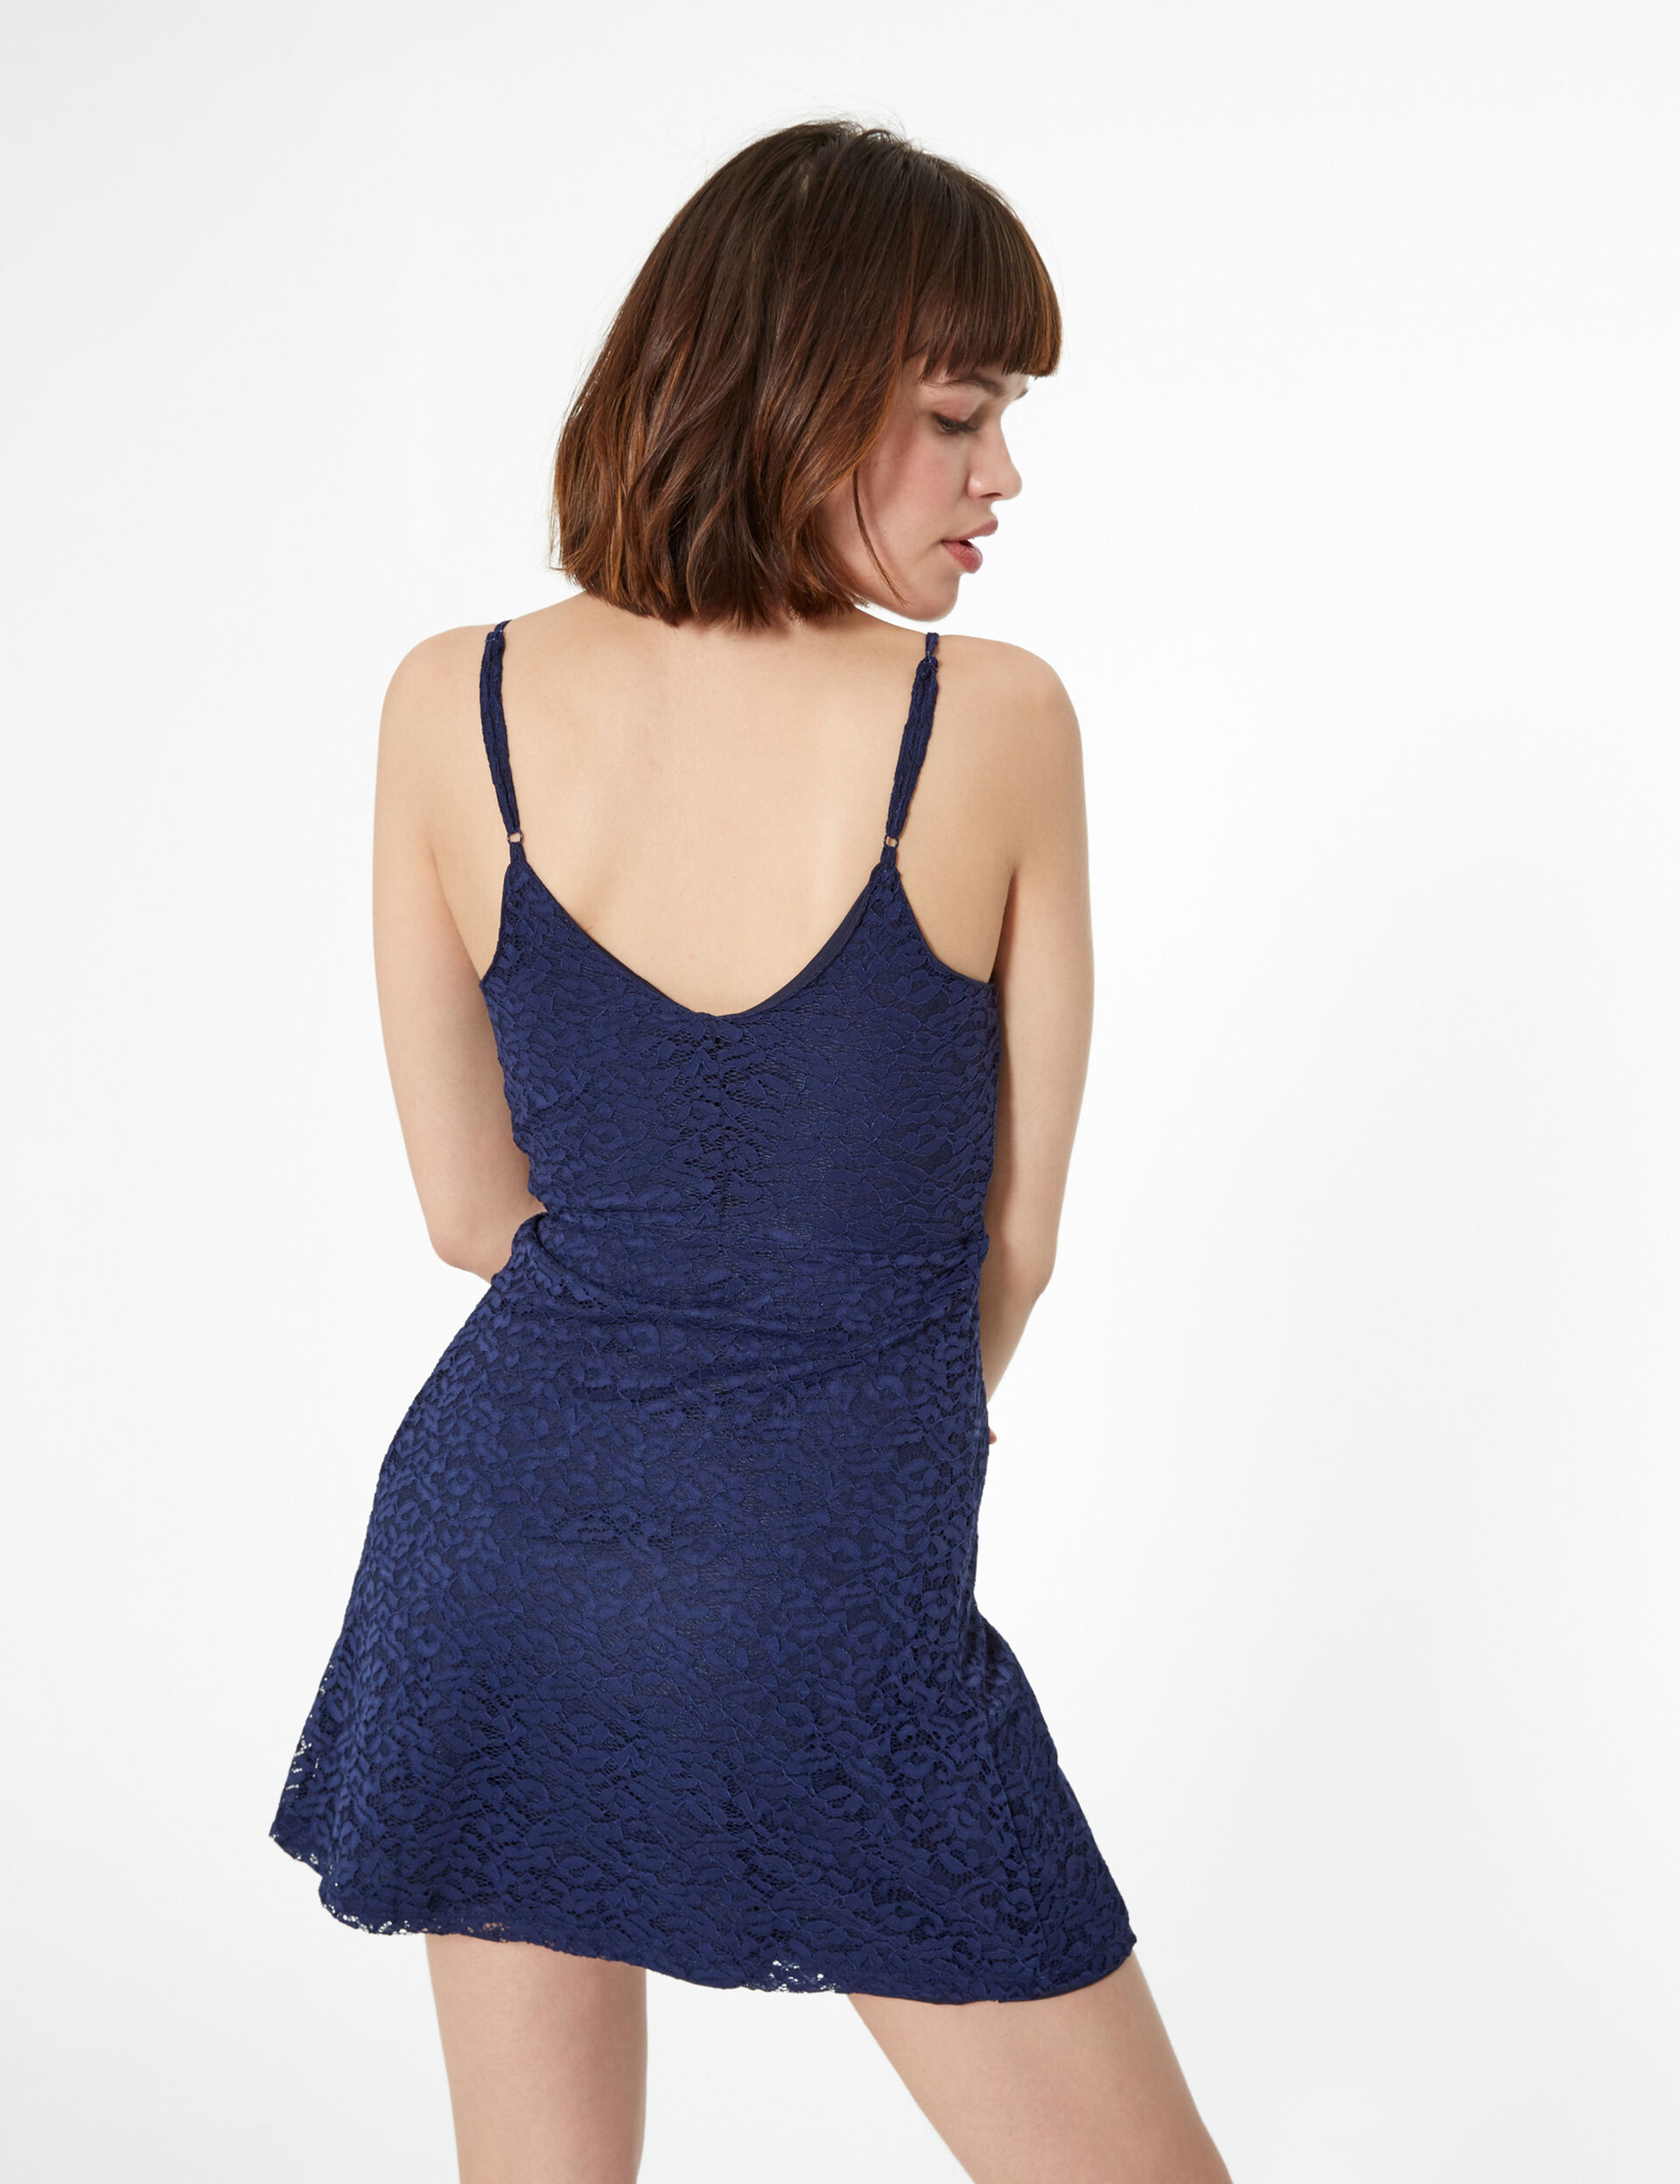 Navy blue lace dress with frill detail